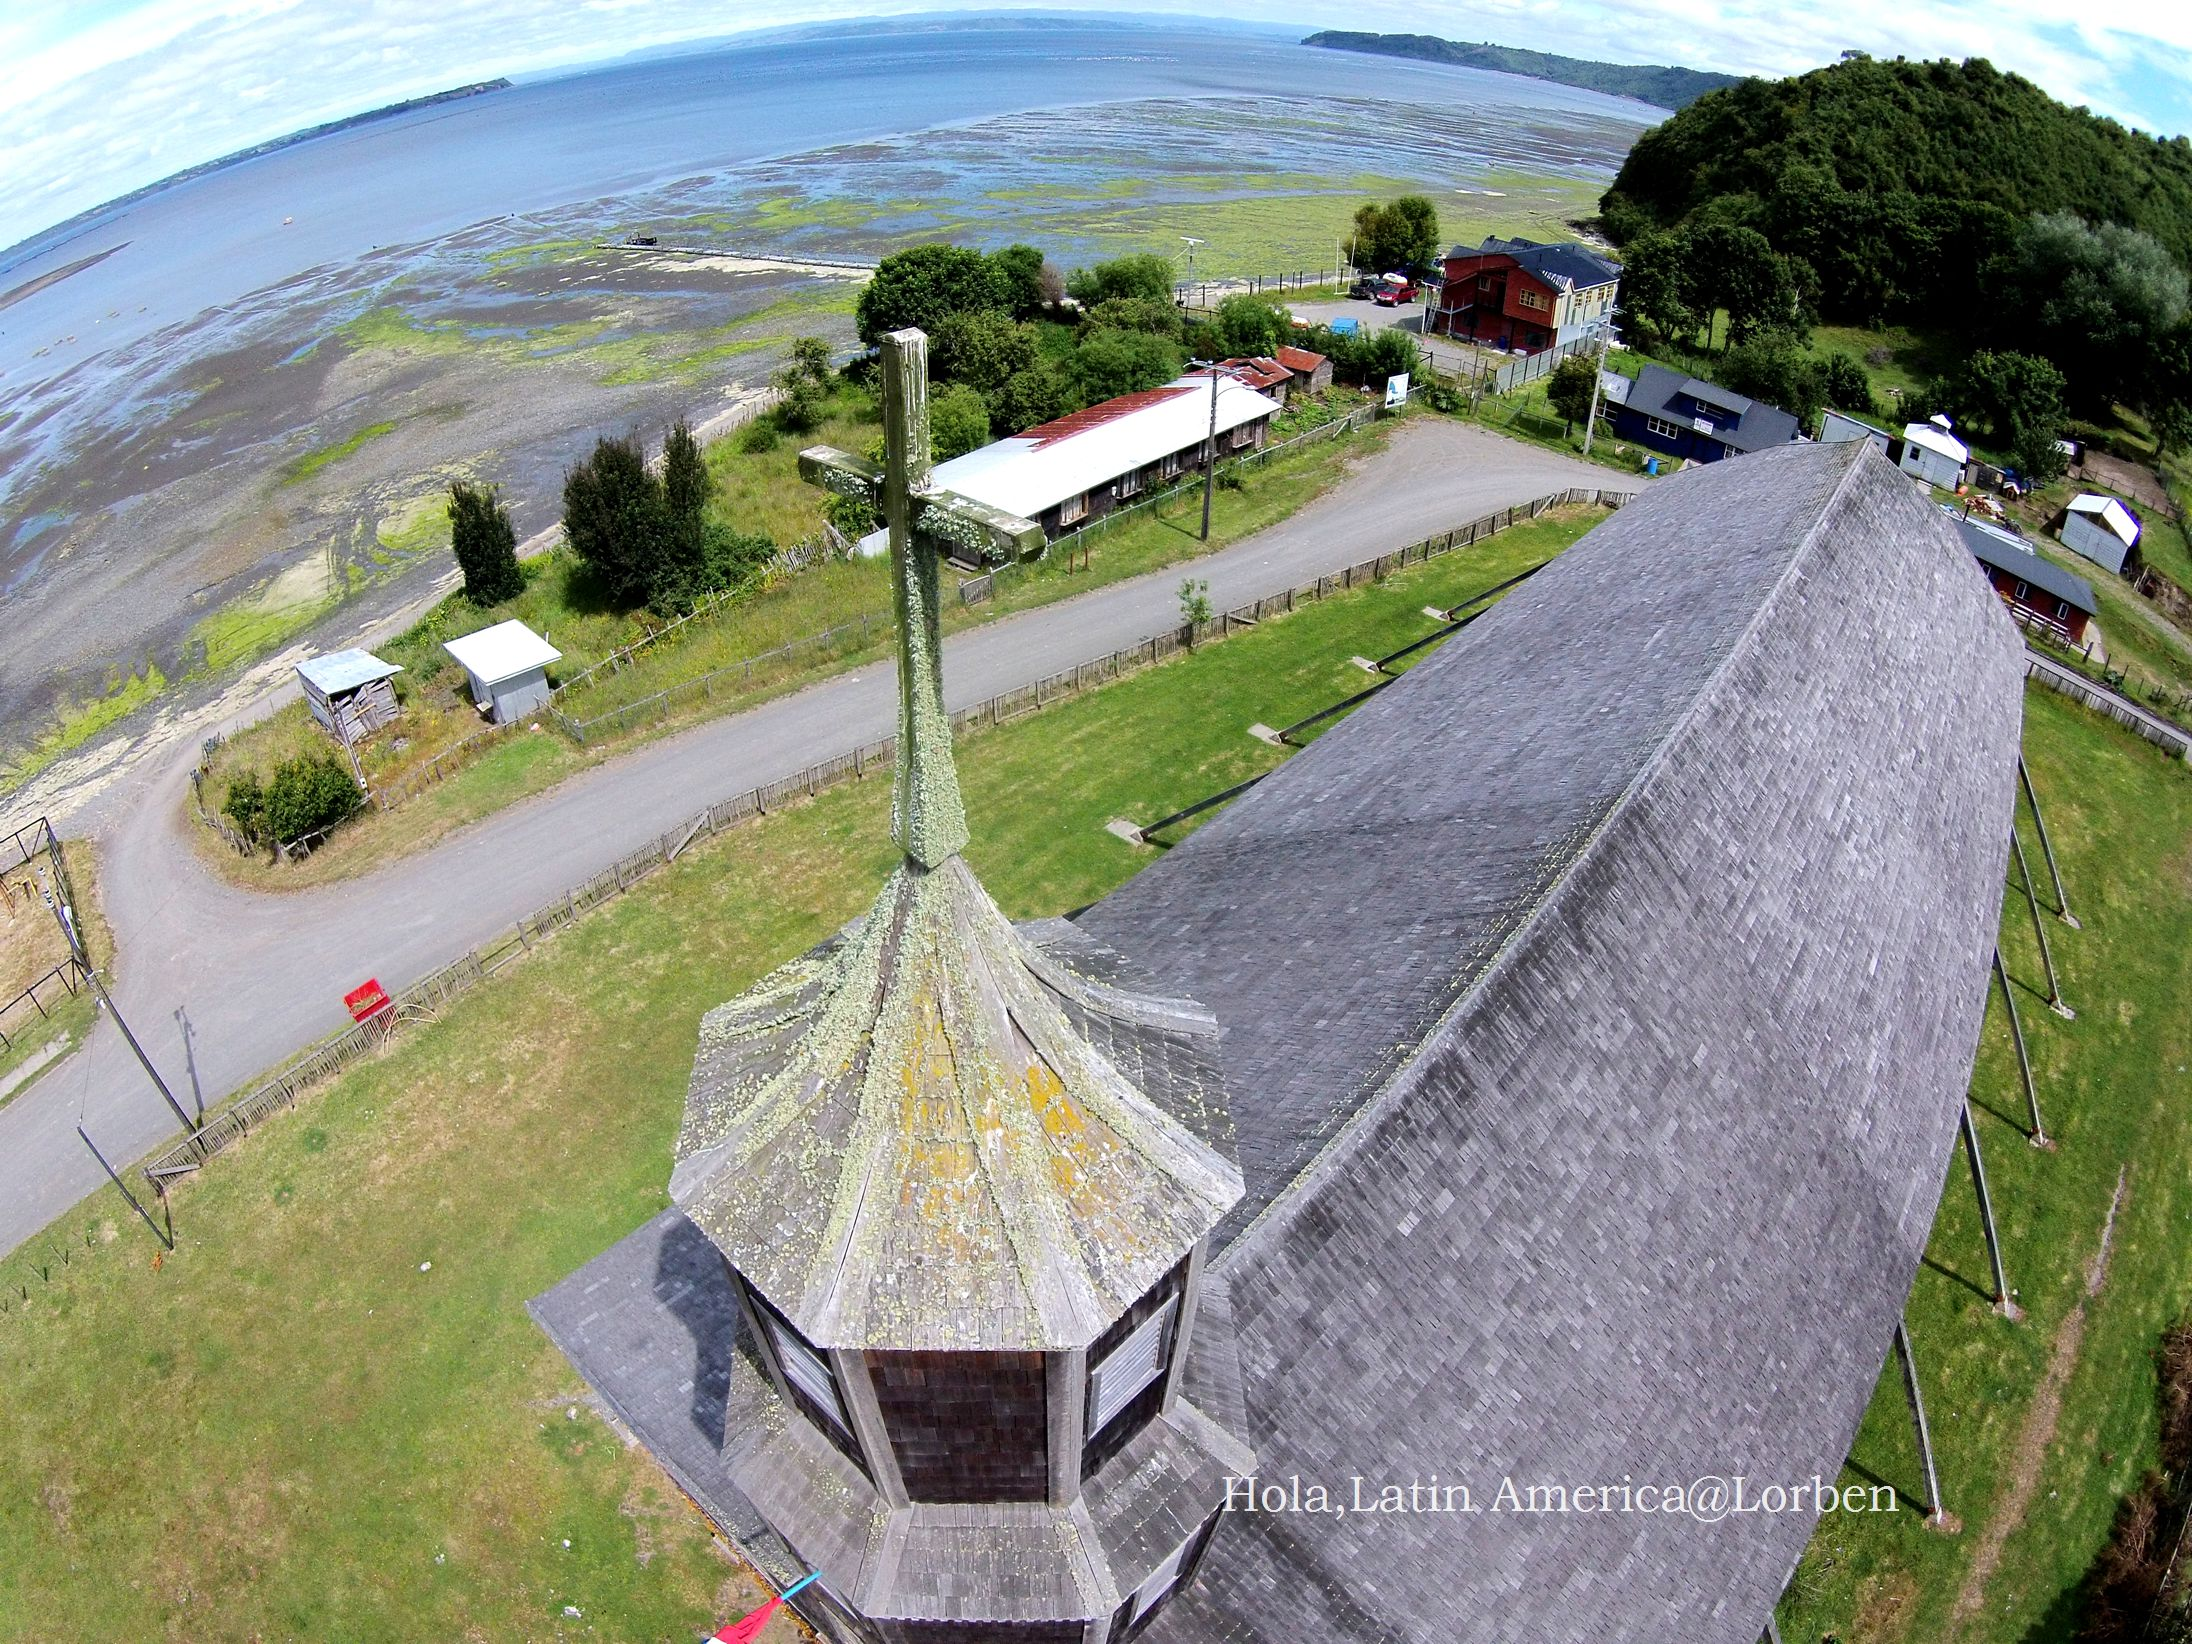 Wooden churuch in Chiloe,Chile